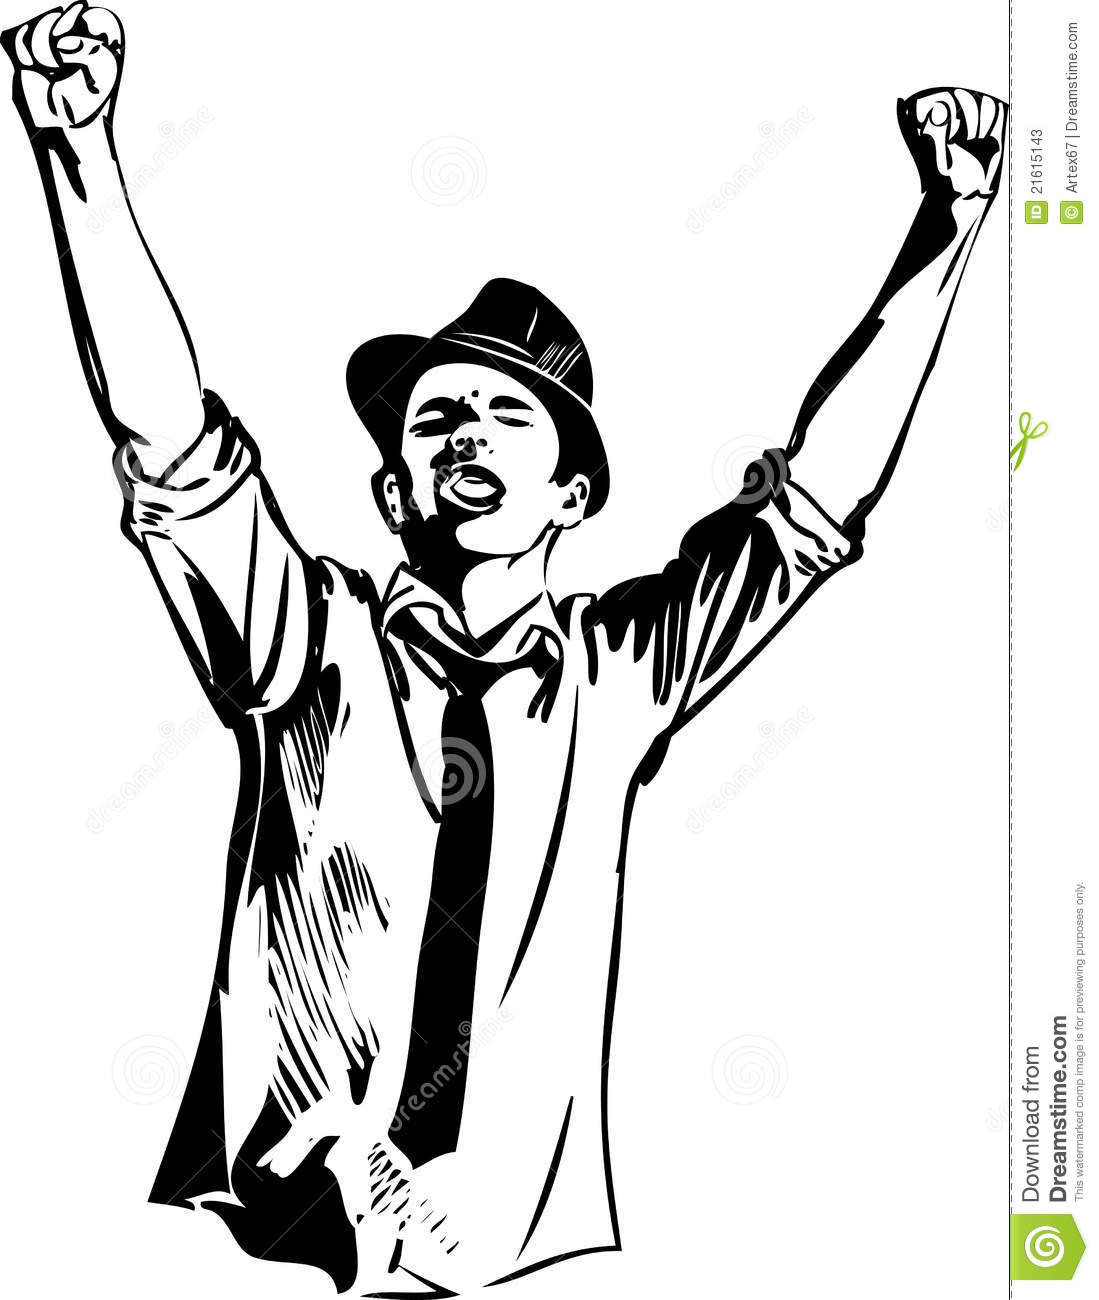 Illustration Clenched Fist Sketch Pics Stock Photos All Sites